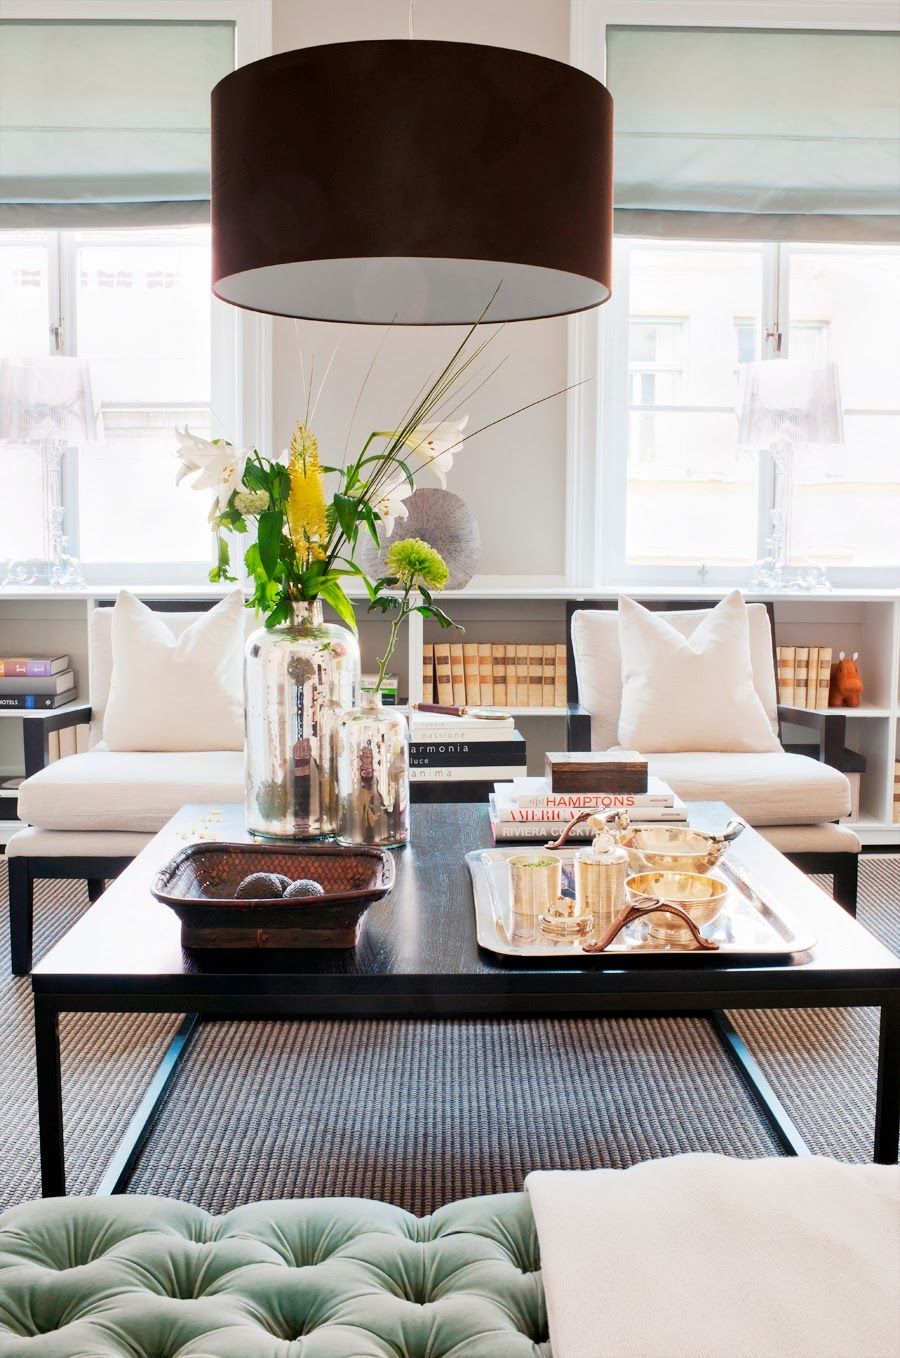 Bungalow 1a: How to Decorate a Coffee Table